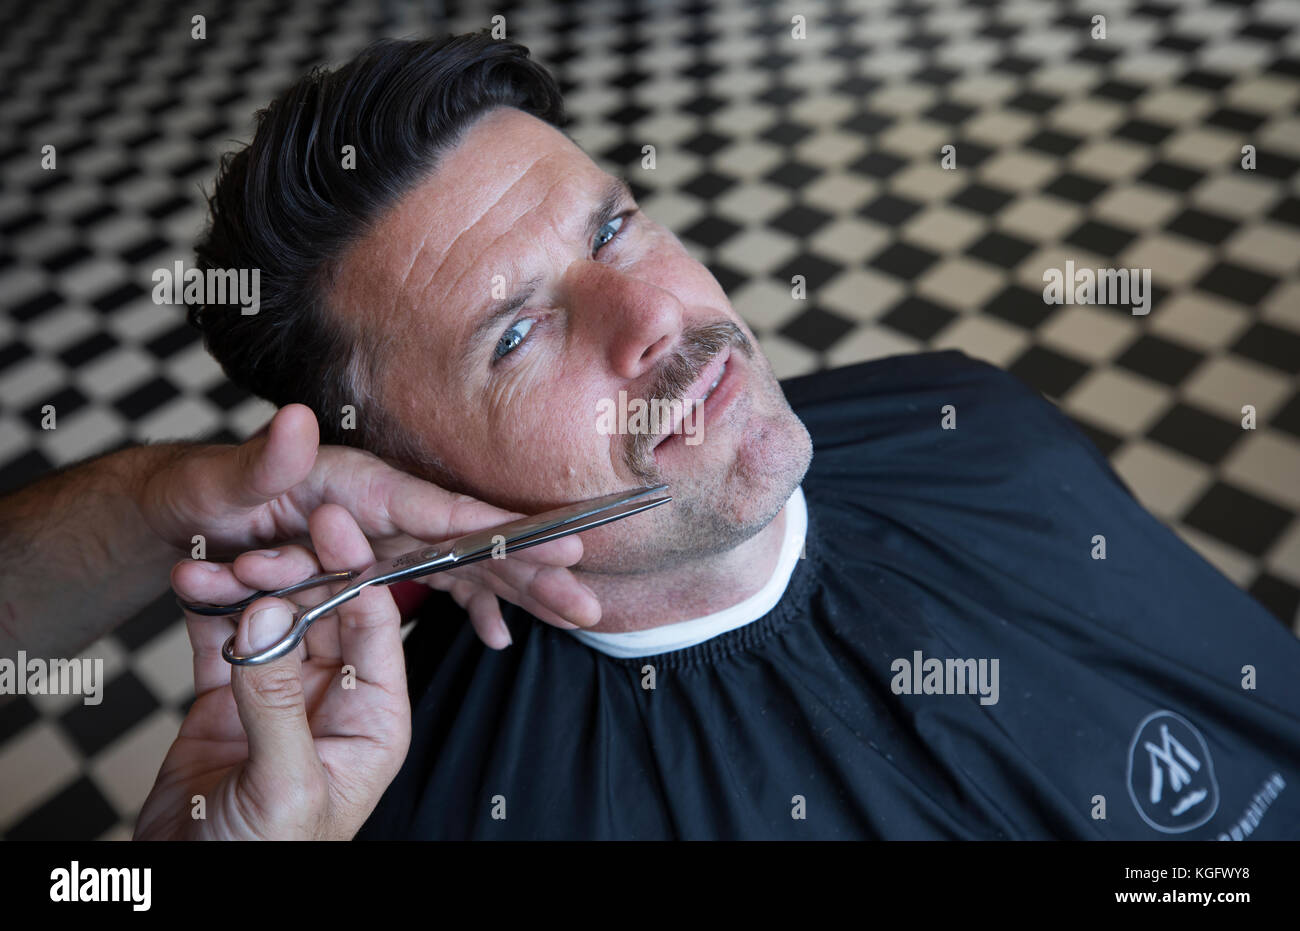 Adam Garone co founder of Movember Foundation at their office in Culver City Los Angeles - Stock Image